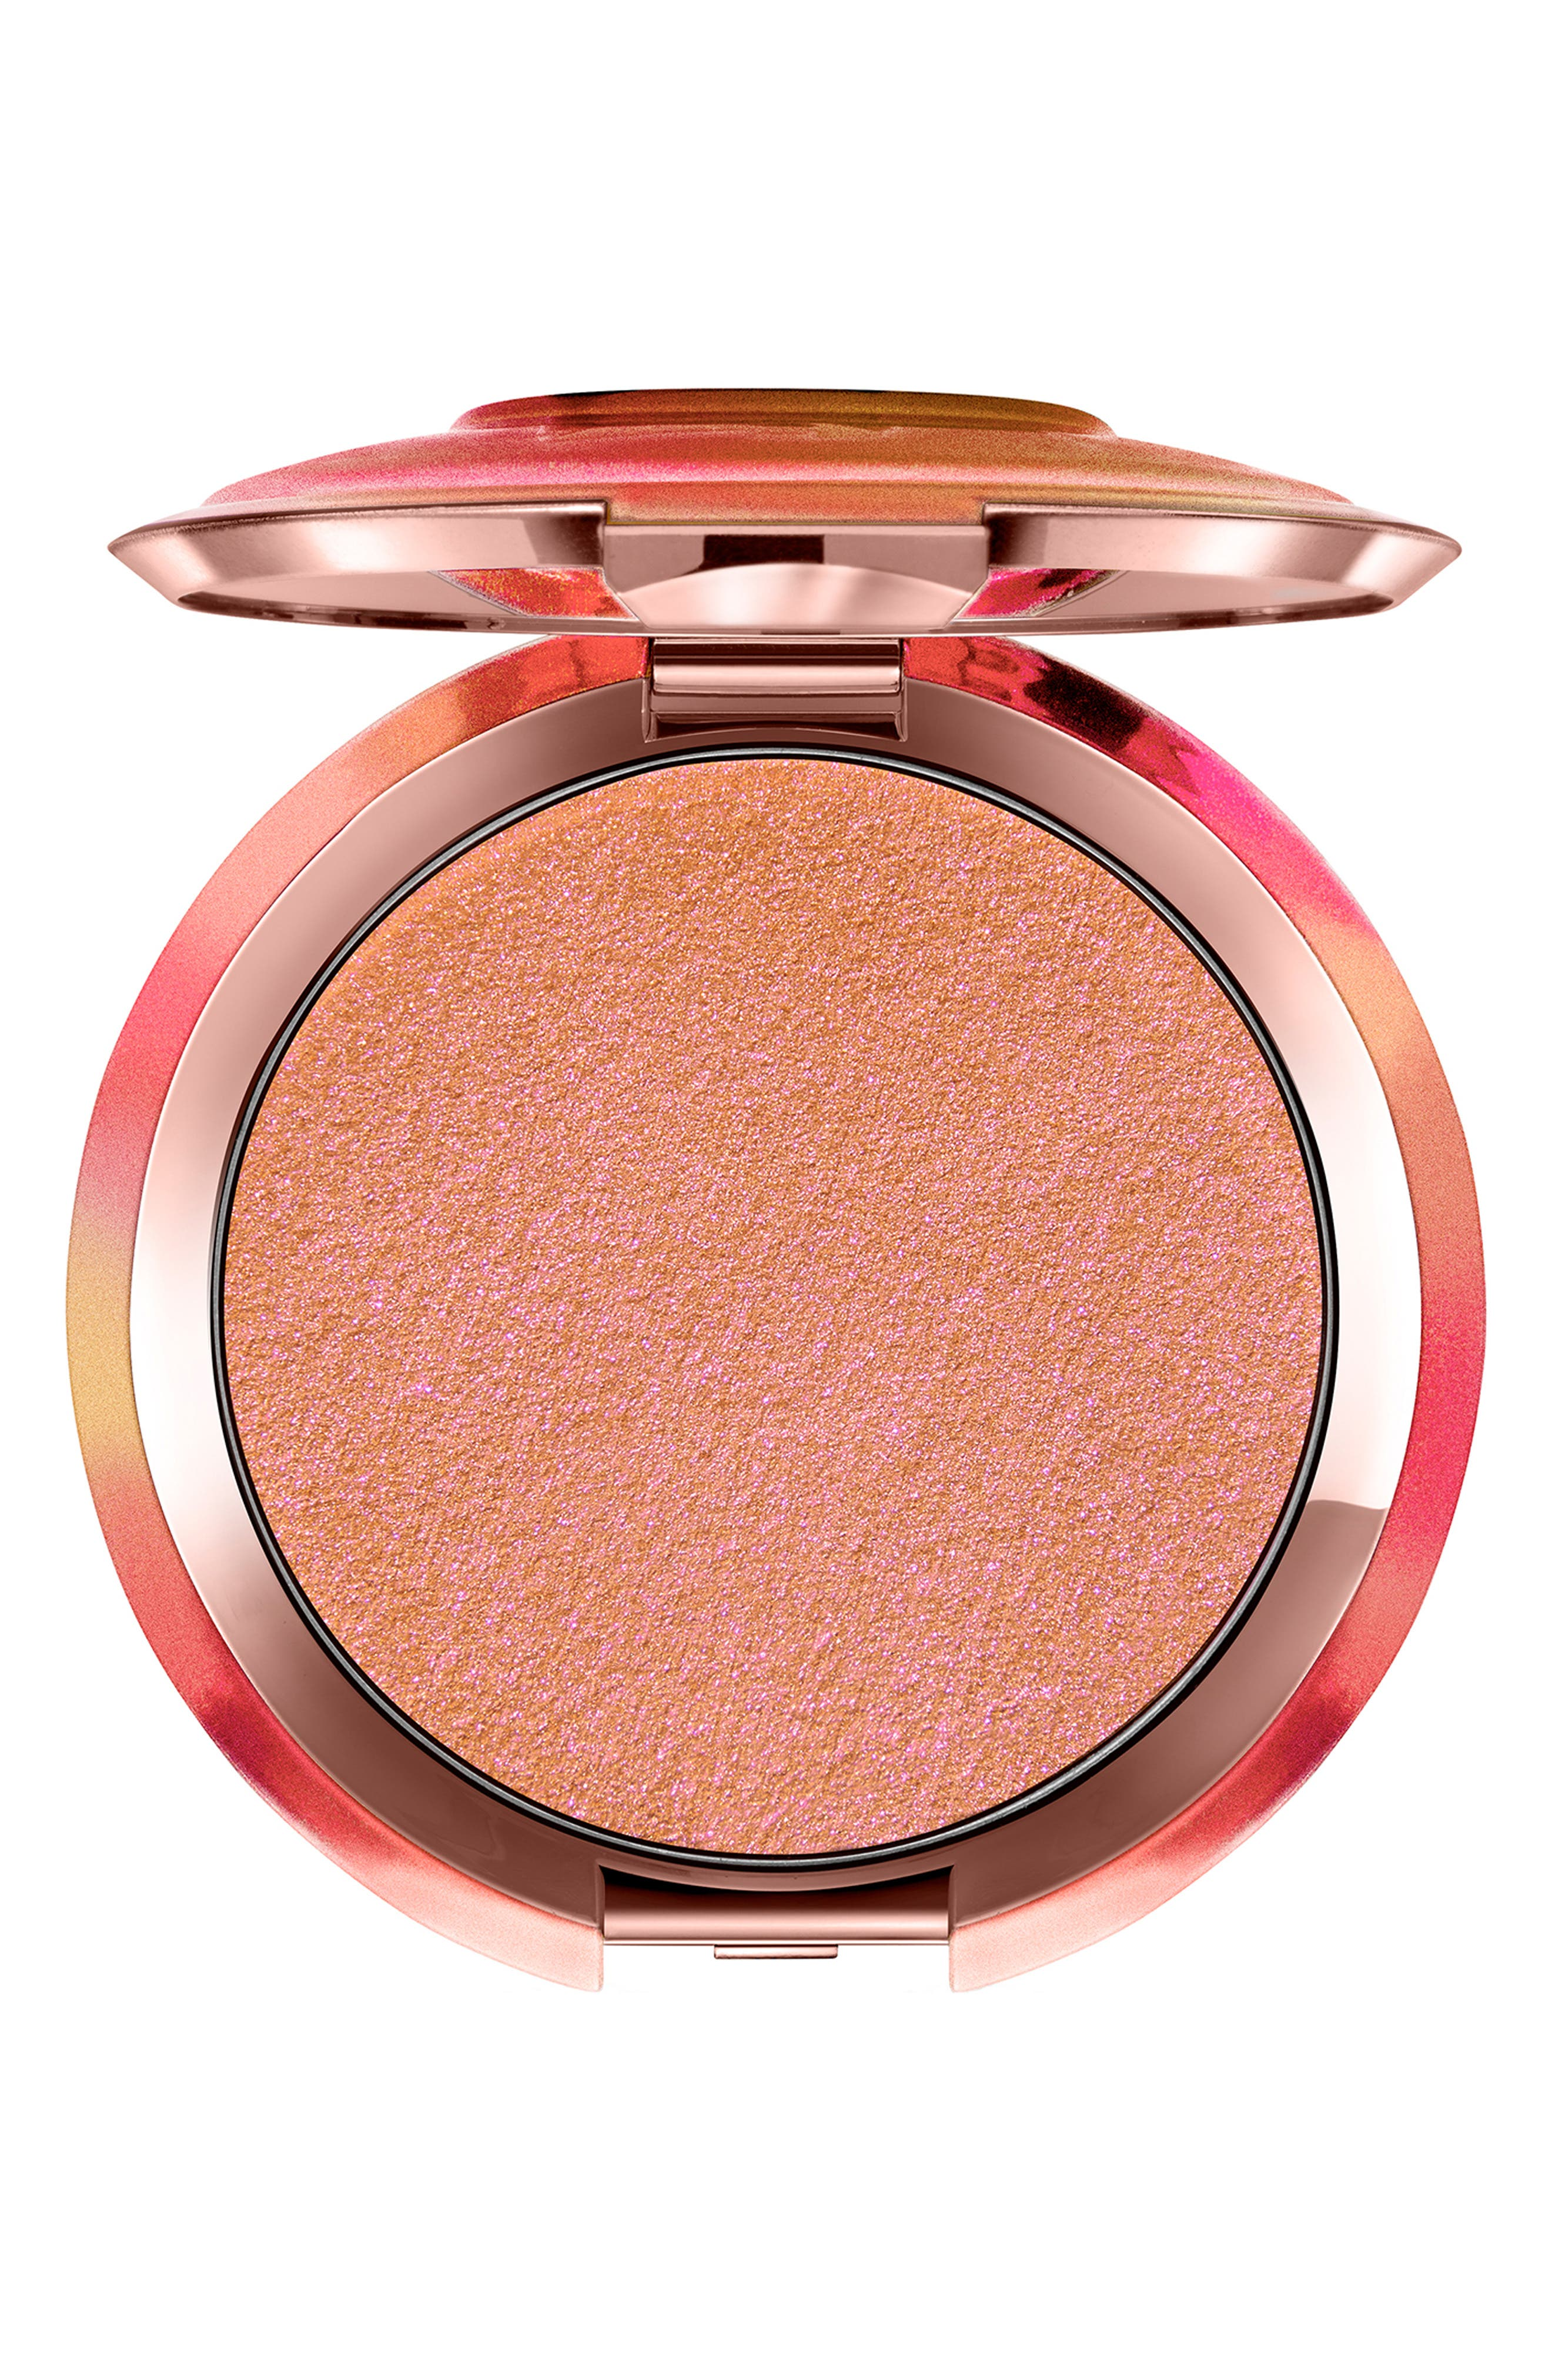 Image of BECCA Cosmetics Shimmering Skin Perfector Pressed - Own Your Light